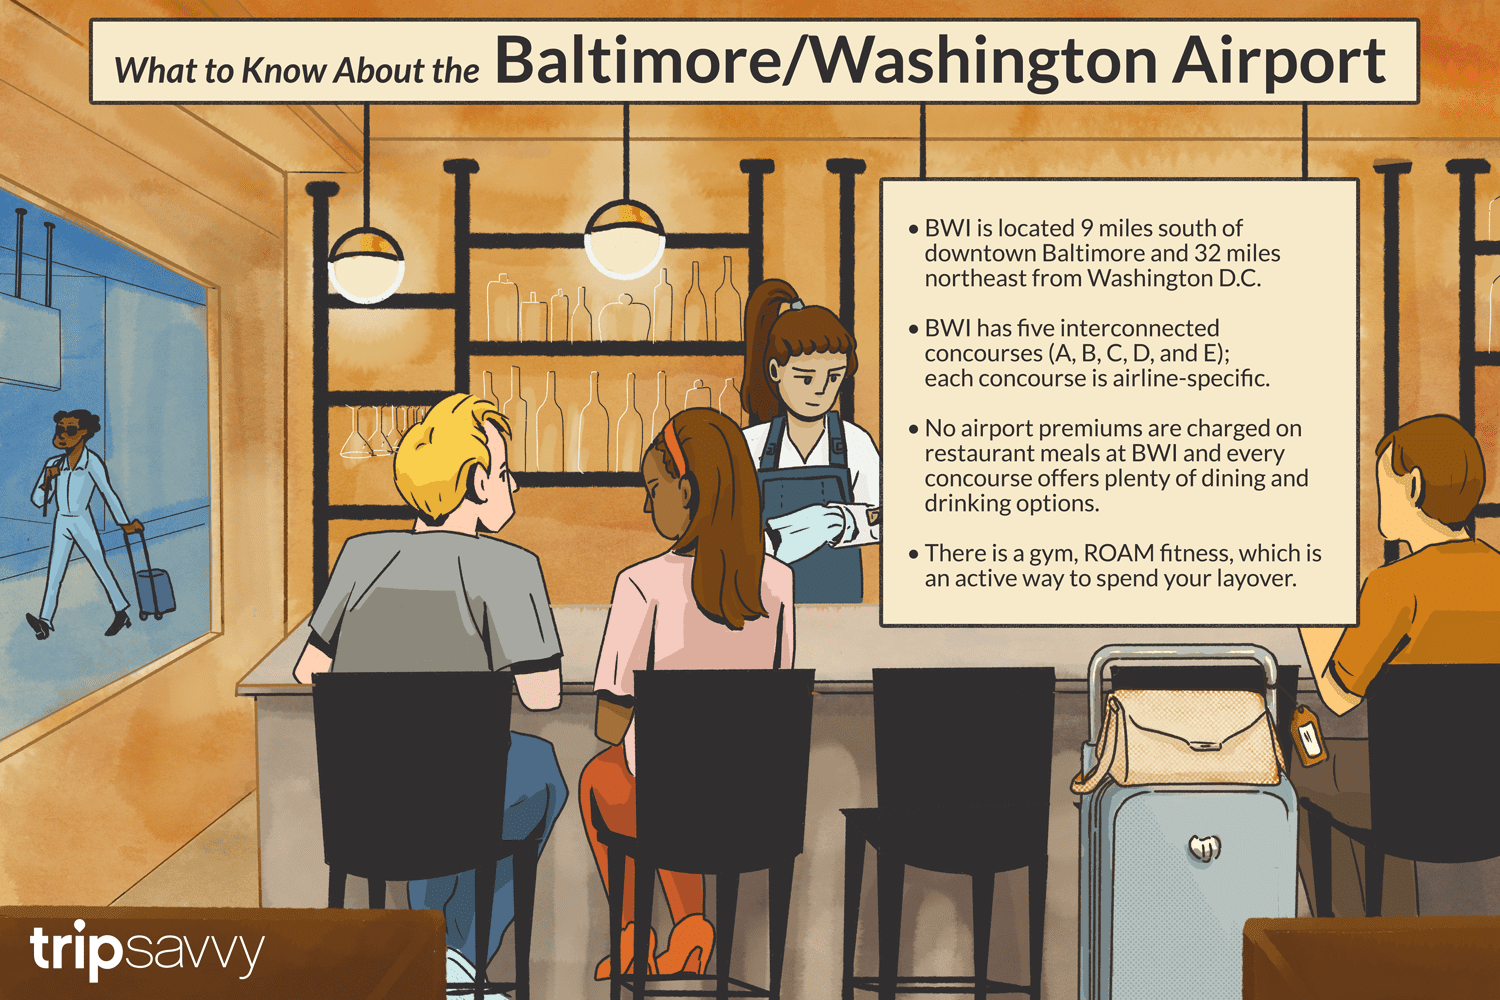 Illustration of people sitting at an airport bar with information about airport from a TripSavvy article